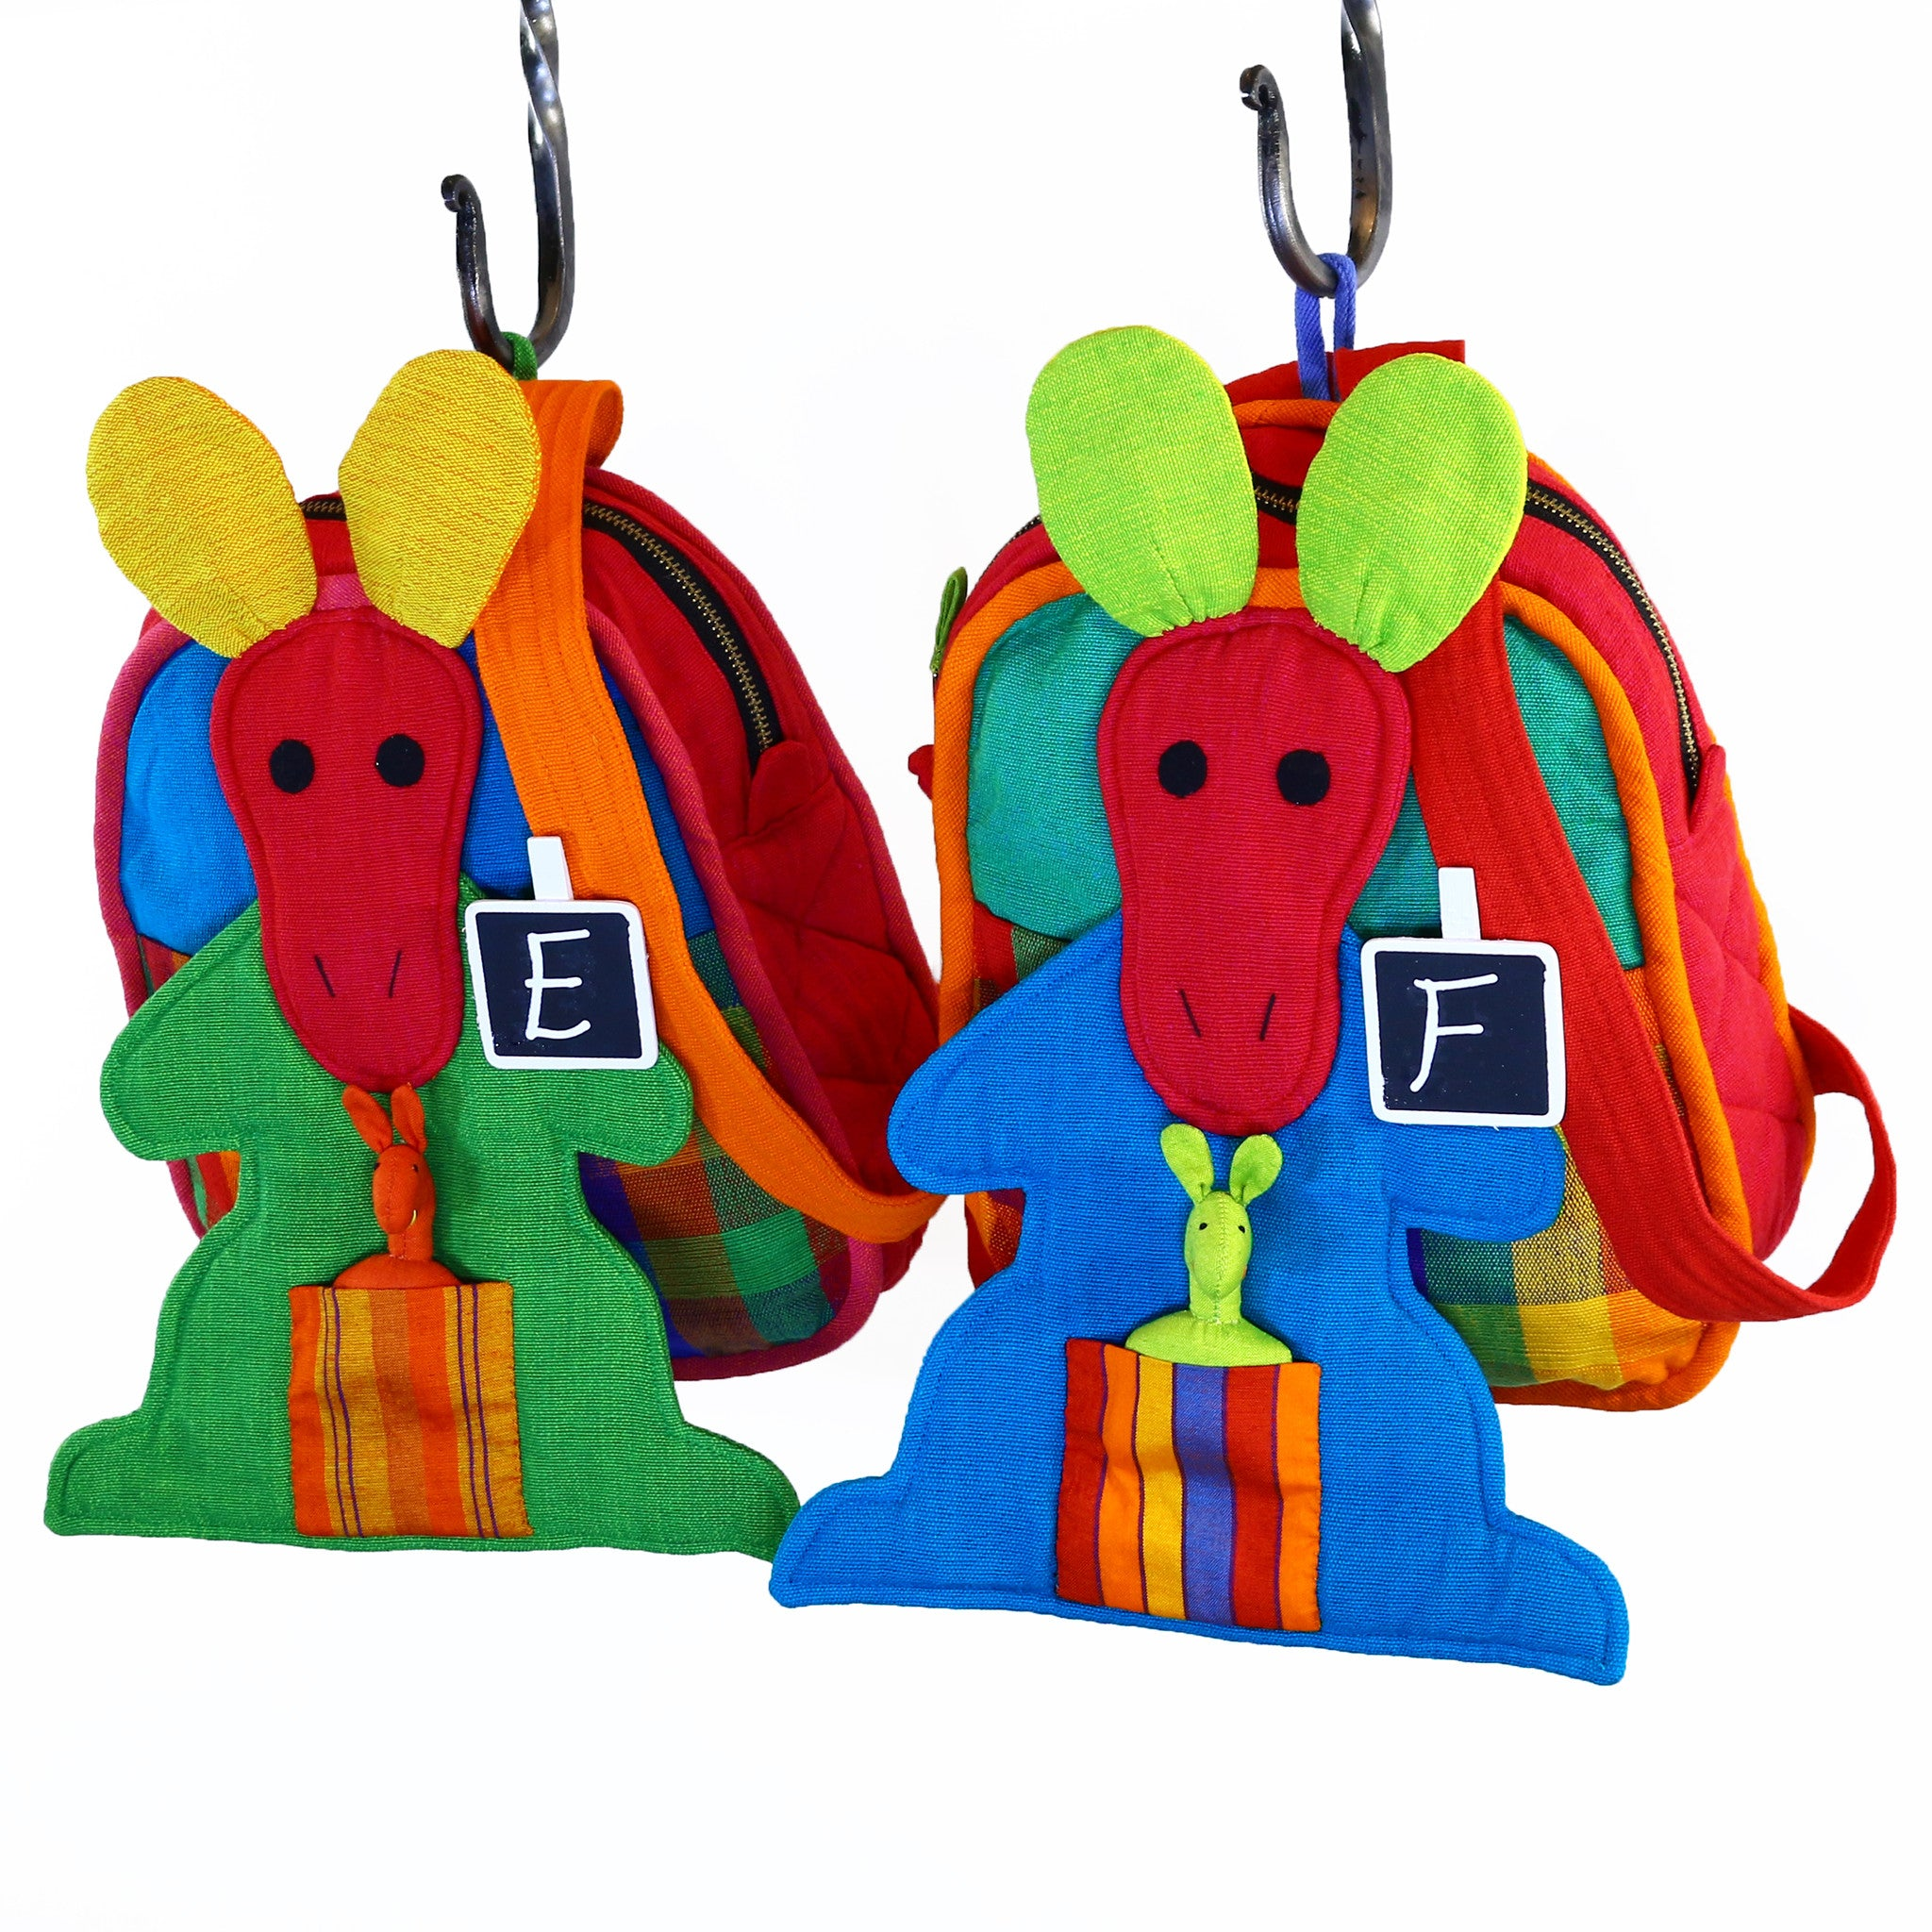 Kangaroo Backpack – Carousel fabric patterns